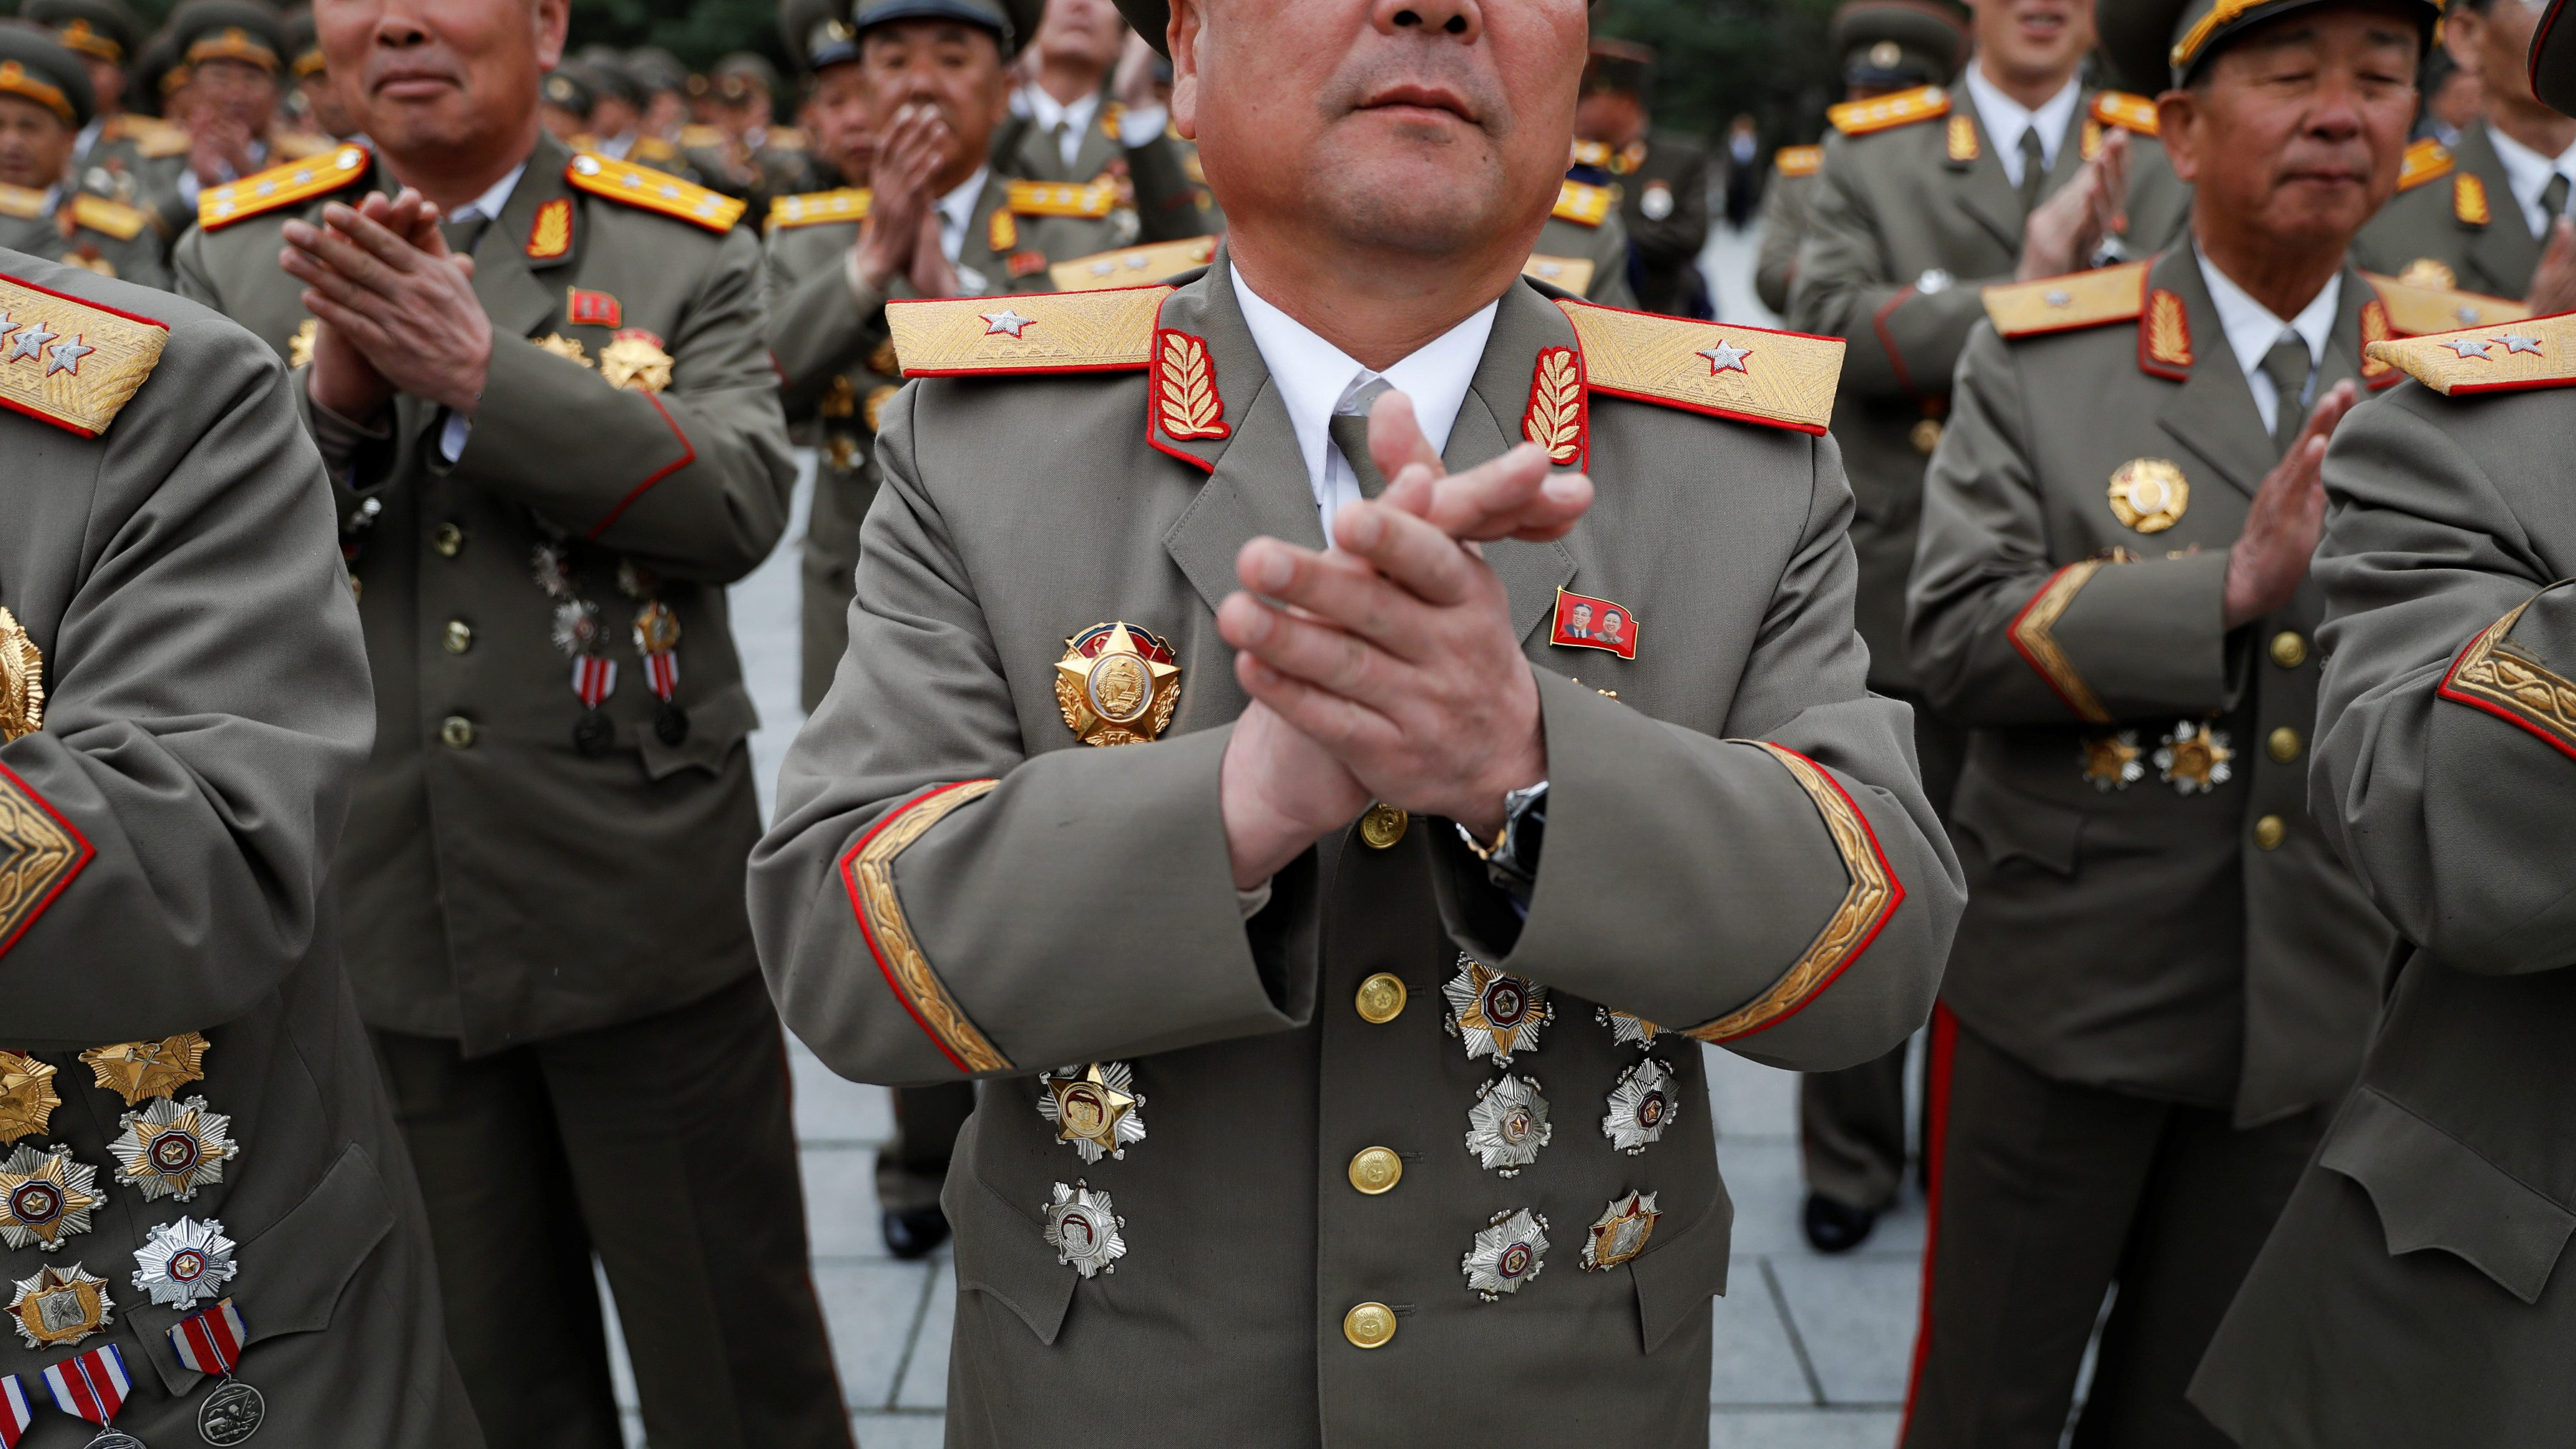 Military officers clap their hands as they visit the birthplace of North Korean founder Kim Il Sung, a day before the 105th anniversary of his birth, in Mangyongdae, just outside Pyongyang, North Korea April 14, 2017.